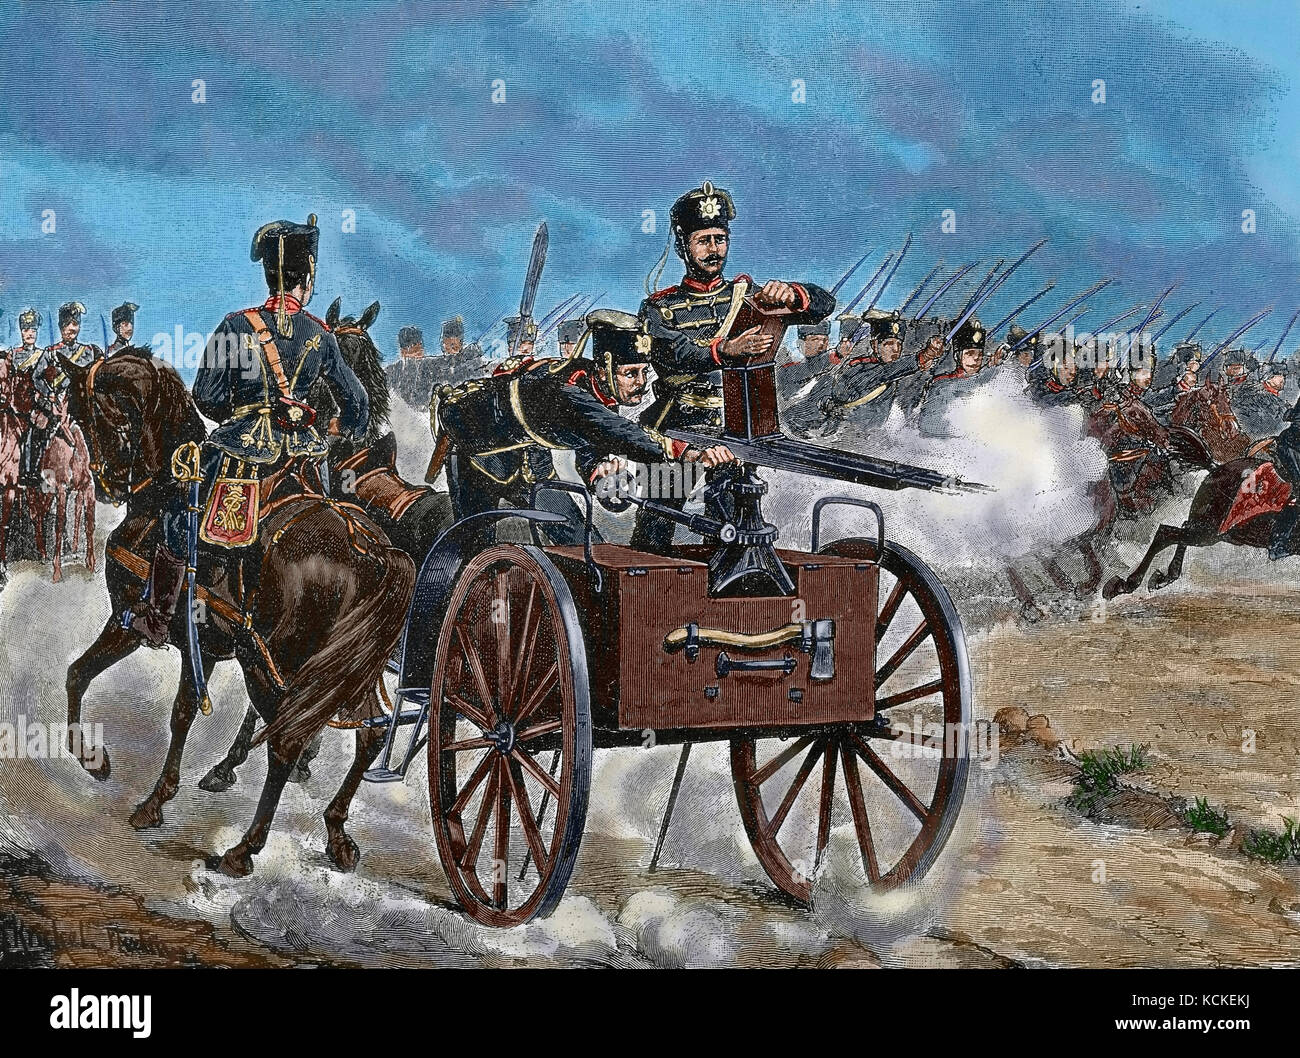 Franco-Prussian War (1870-1871). Troops of the Prussian Guard. Engraving. 'La Ilustracion', 1870. Colored. - Stock Image